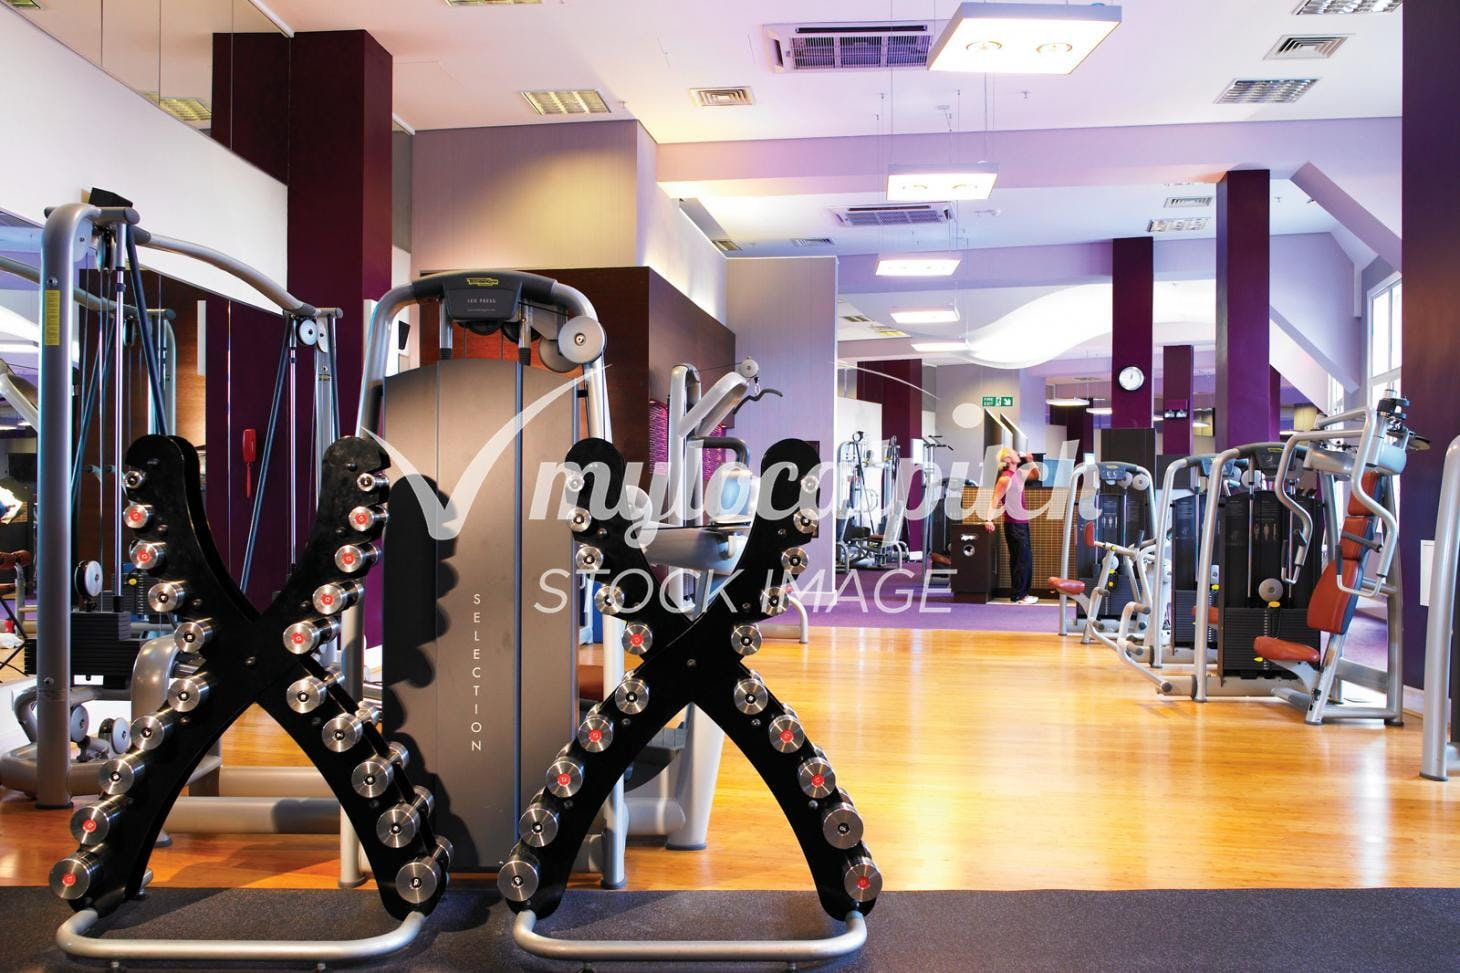 Club Kensington Gym gym